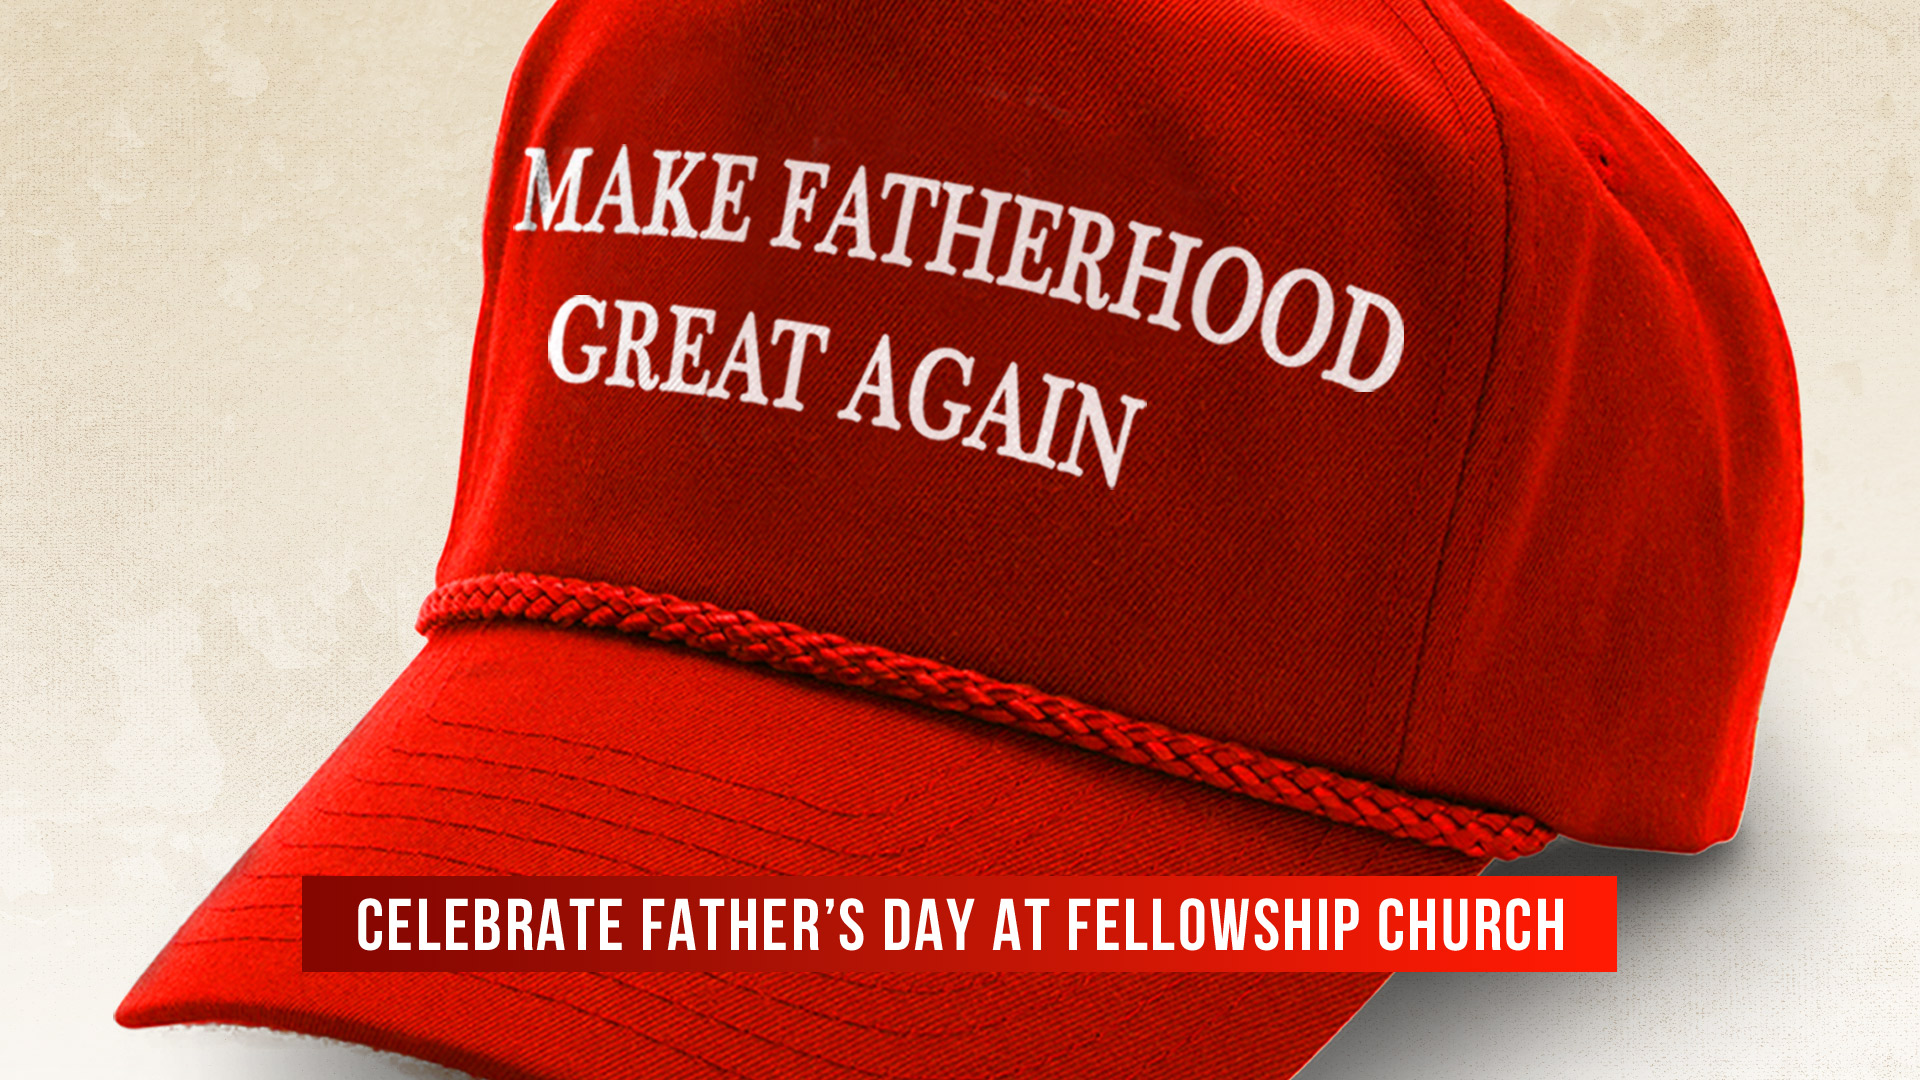 Make Fatherhood Great Again!